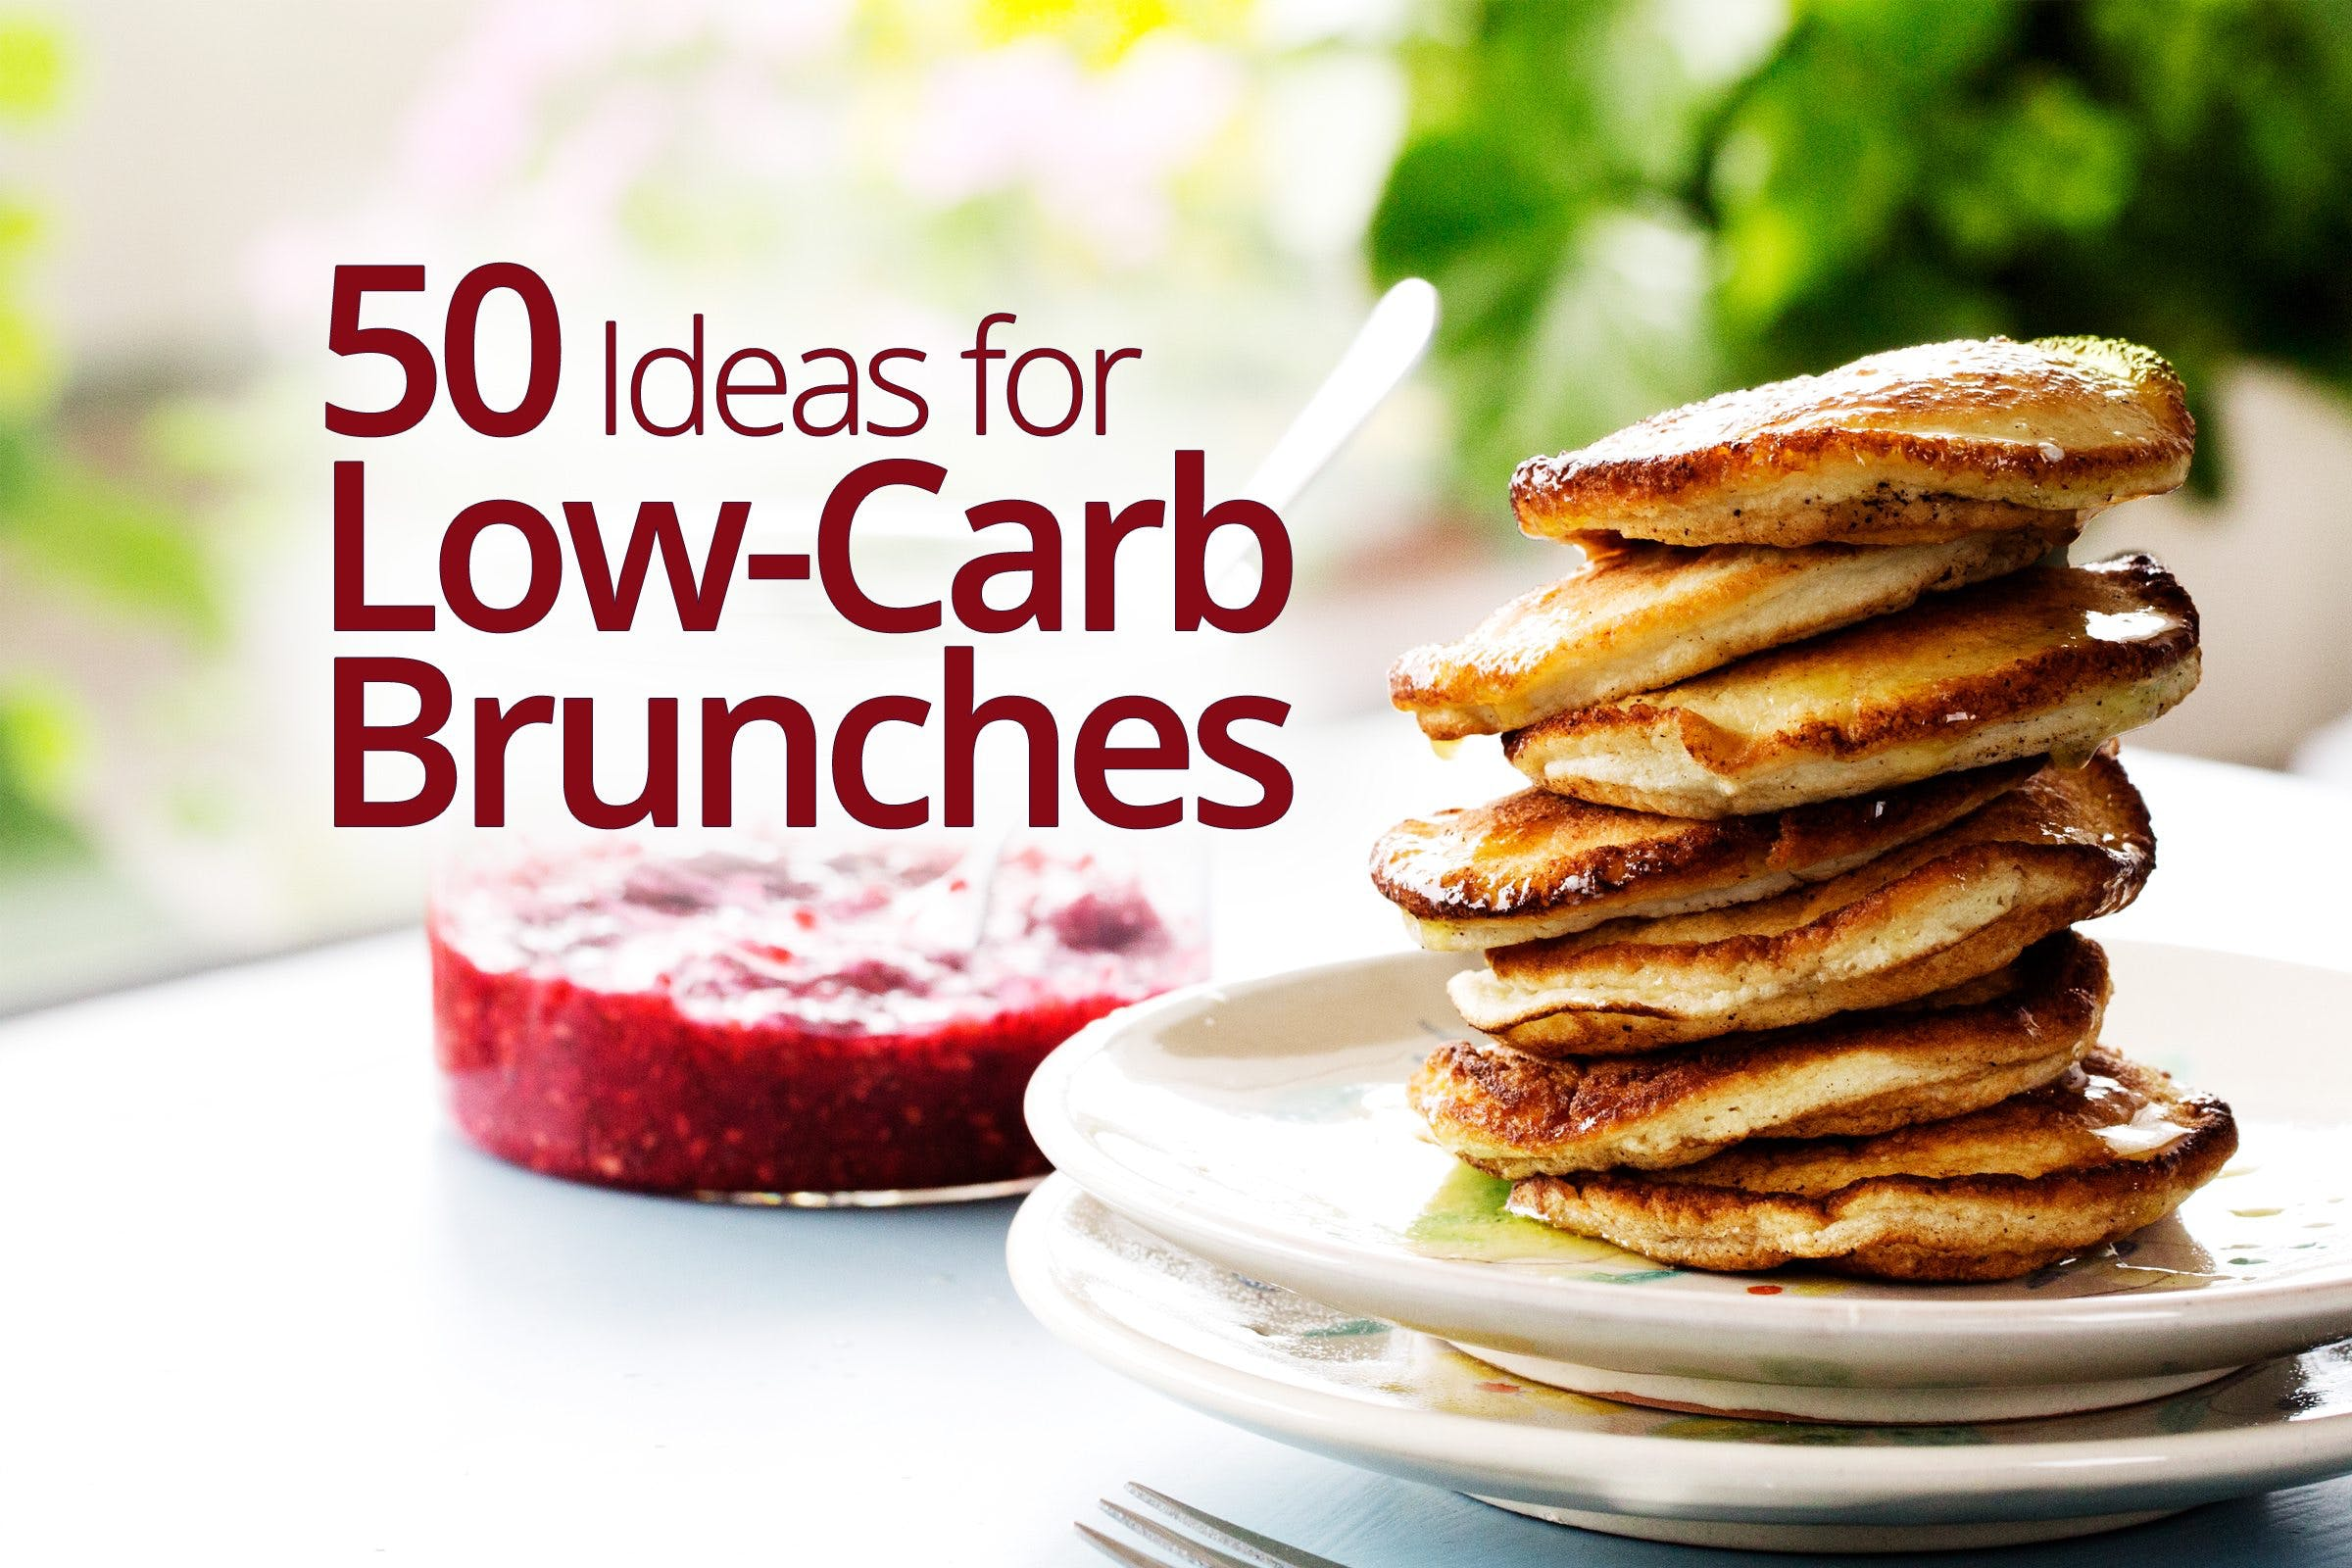 50 Great Ideas for Low-Carb Brunches